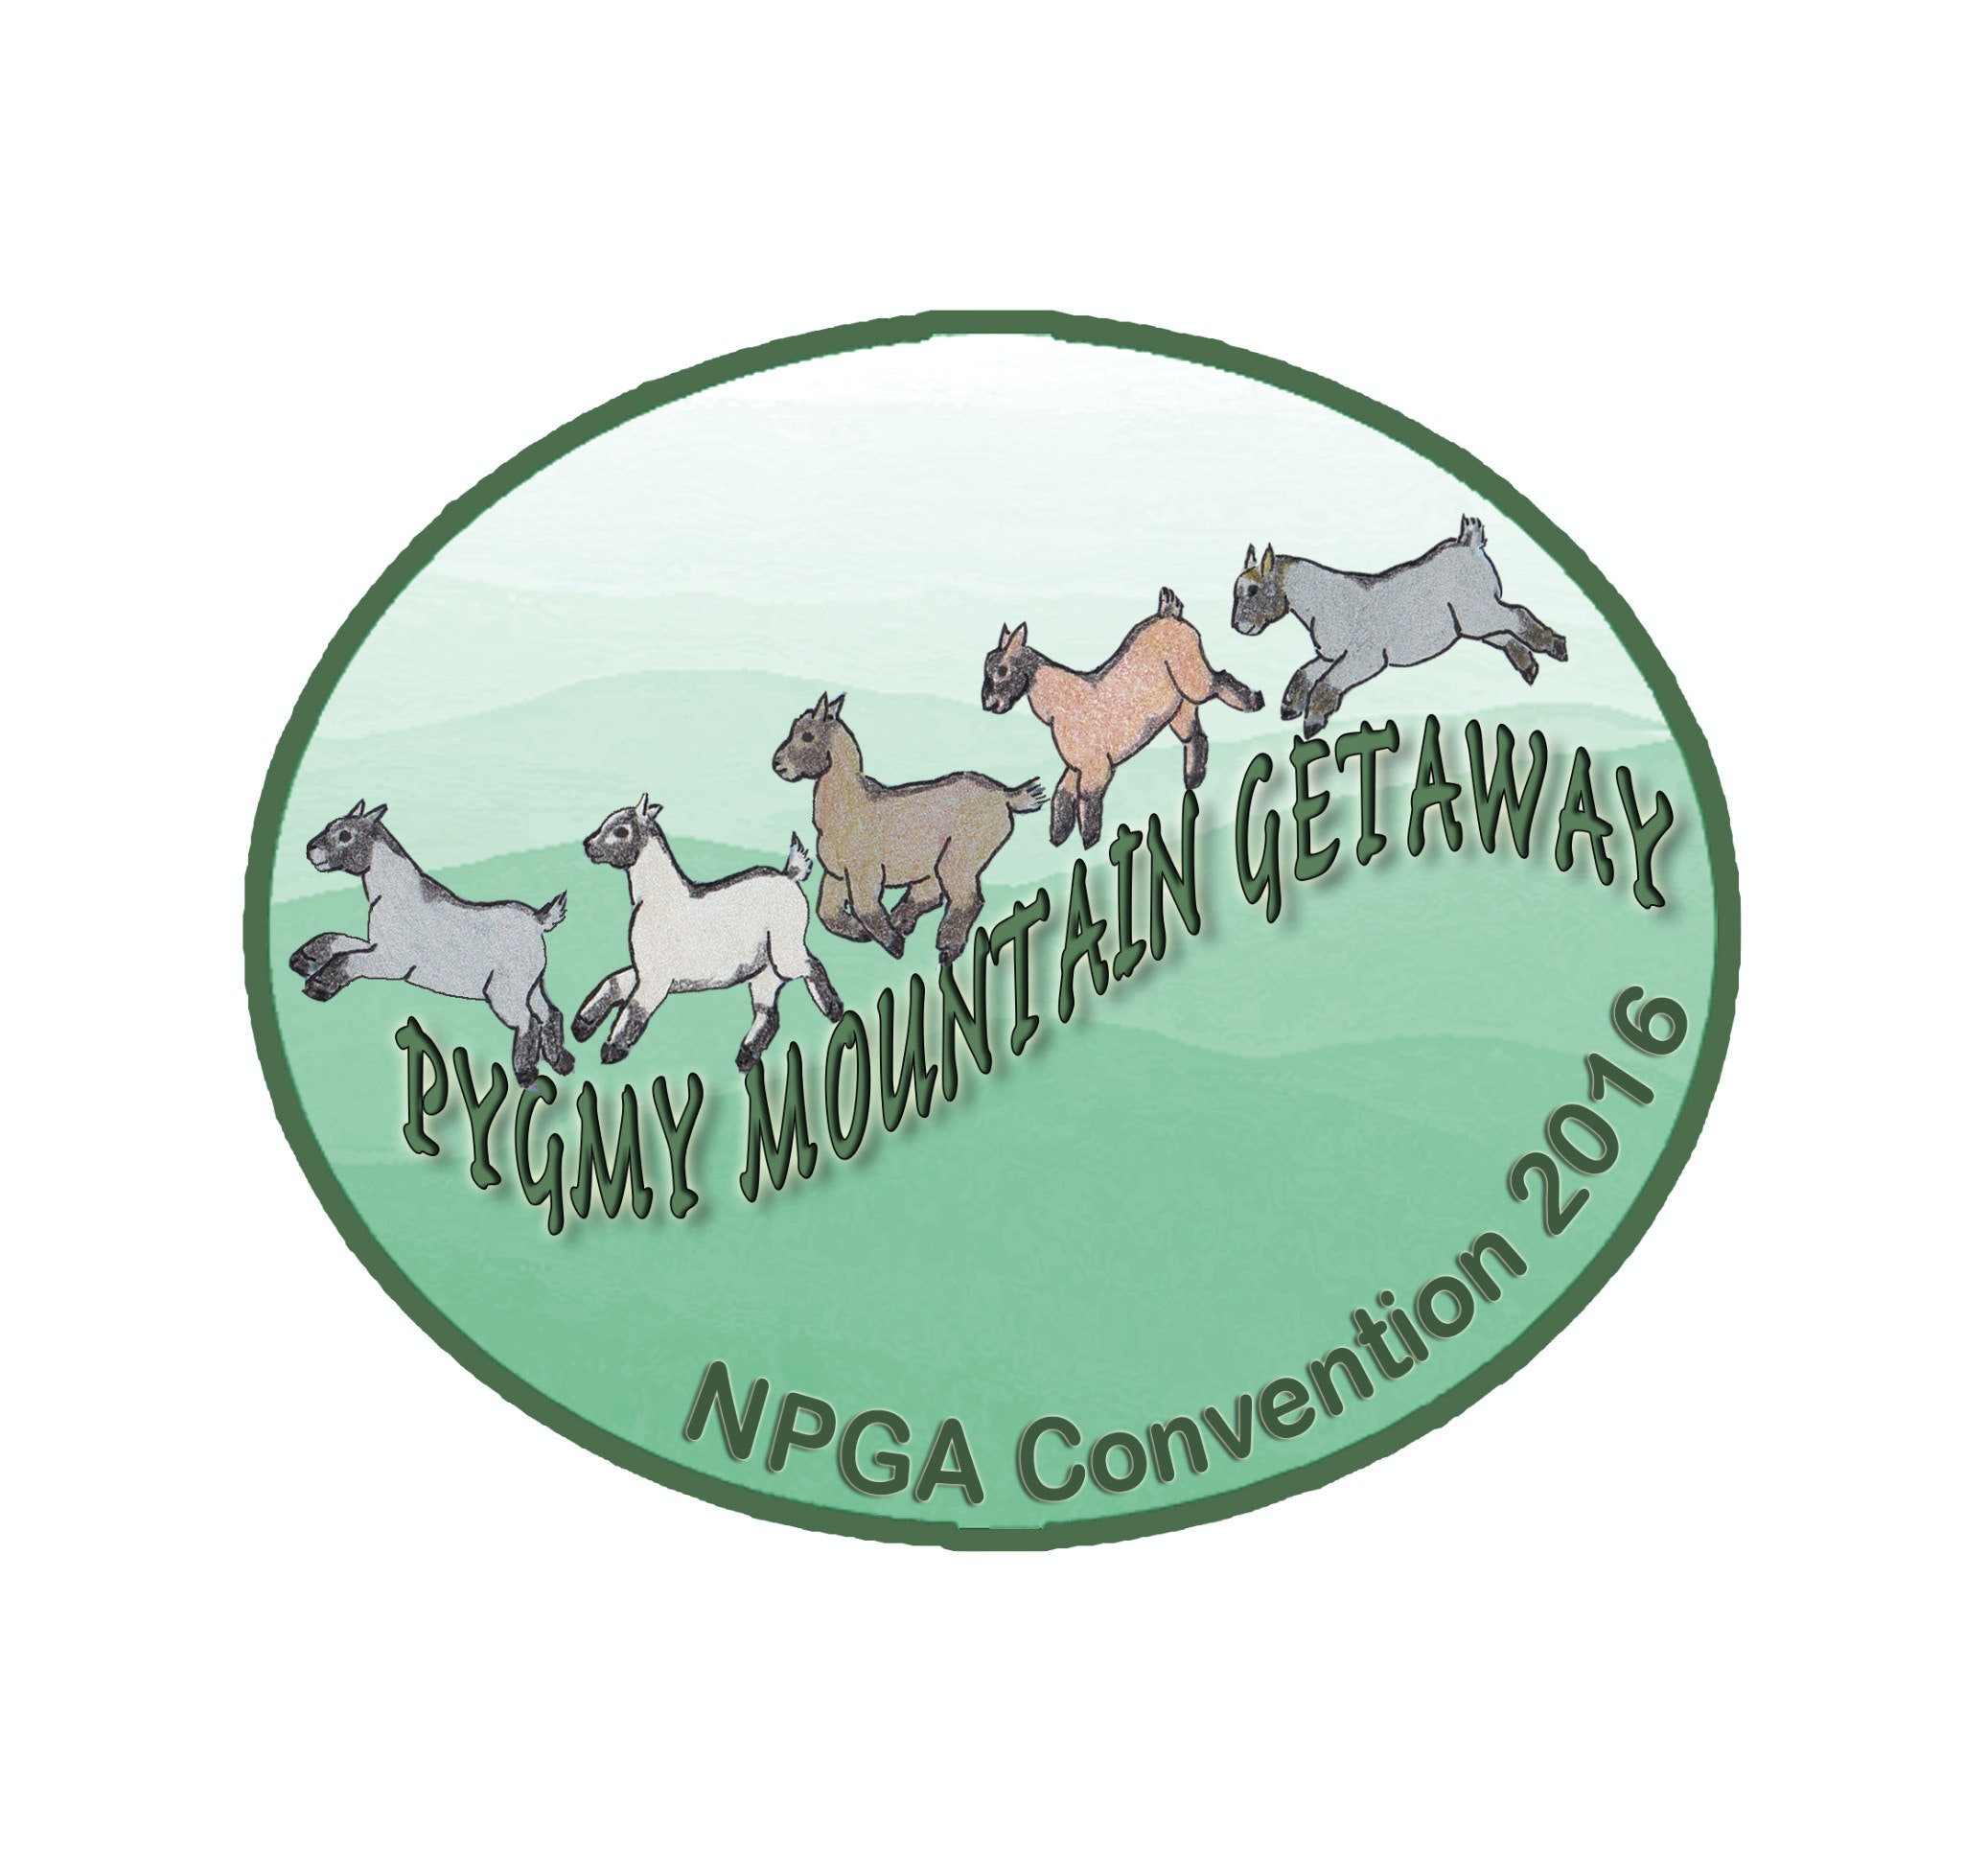 NPGA Convention 2016 - Pygmy Goat Club